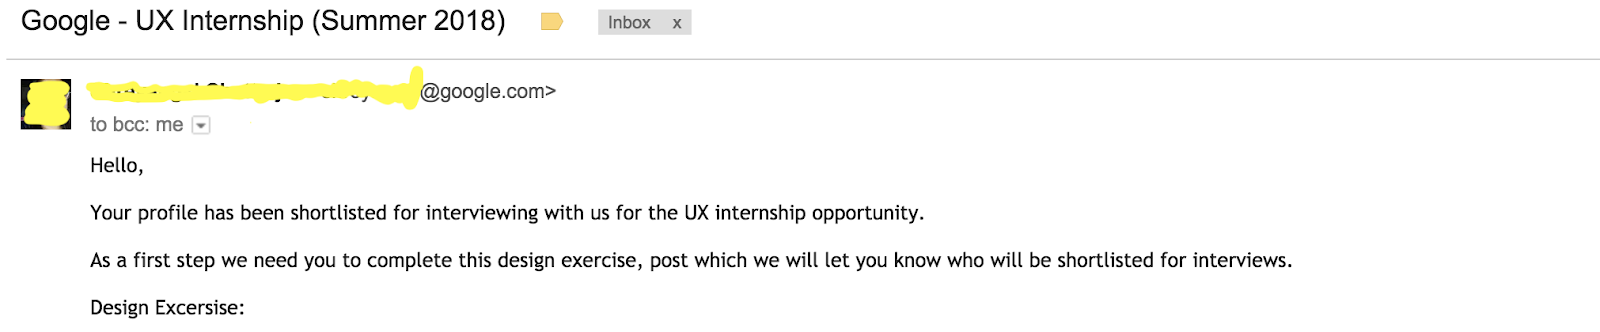 4 months passed and when i had totally left any hope for the internship at google a reply hit my inbox on 3 january informing that my profile was